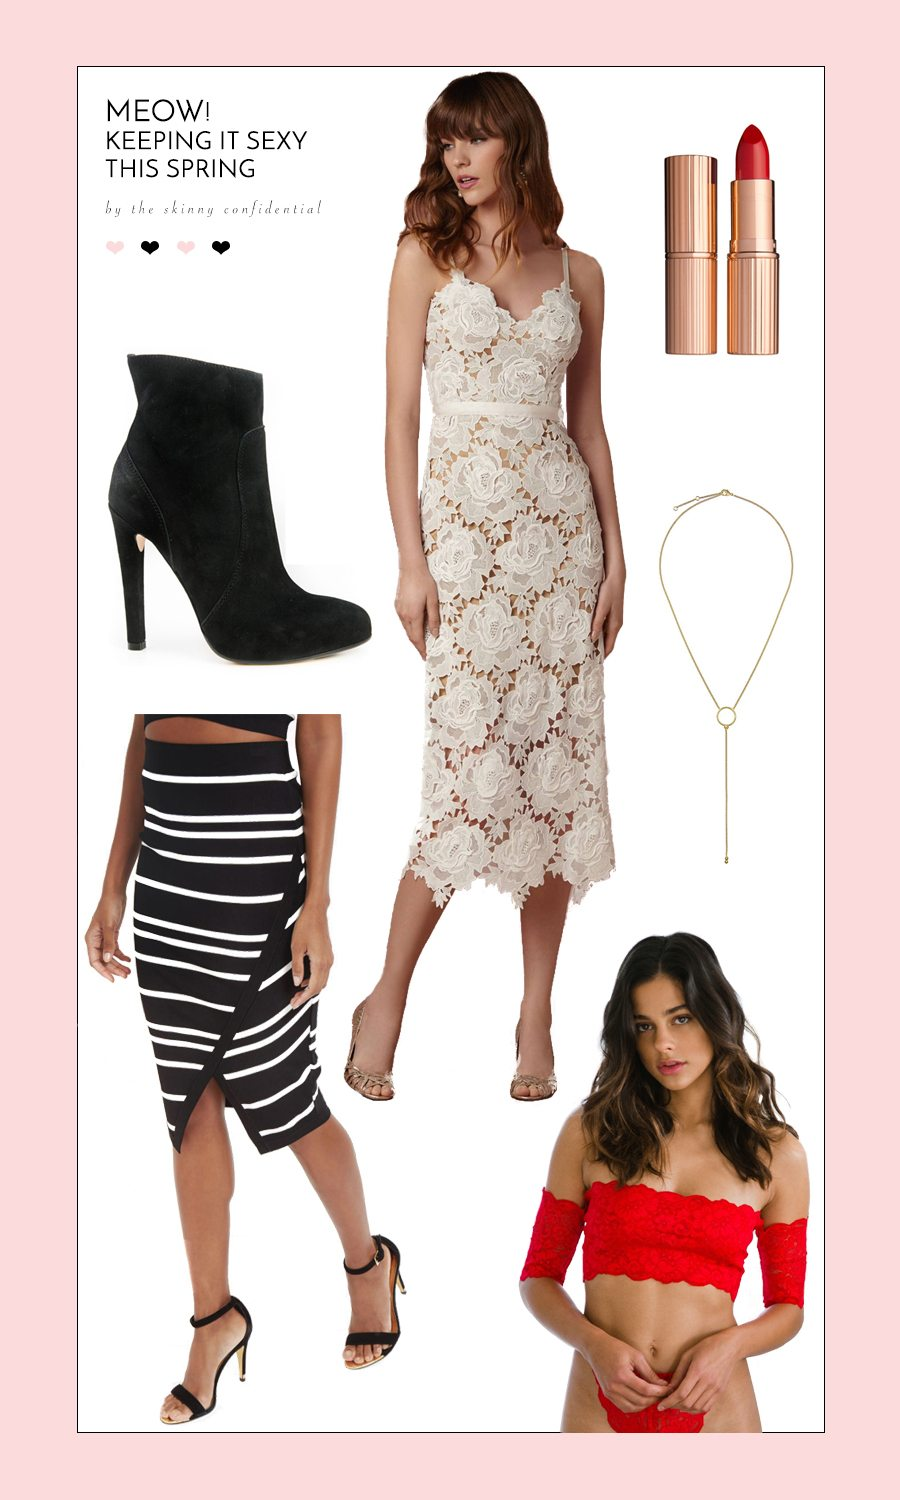 keeping it sexy this spring   by the skinny confidential